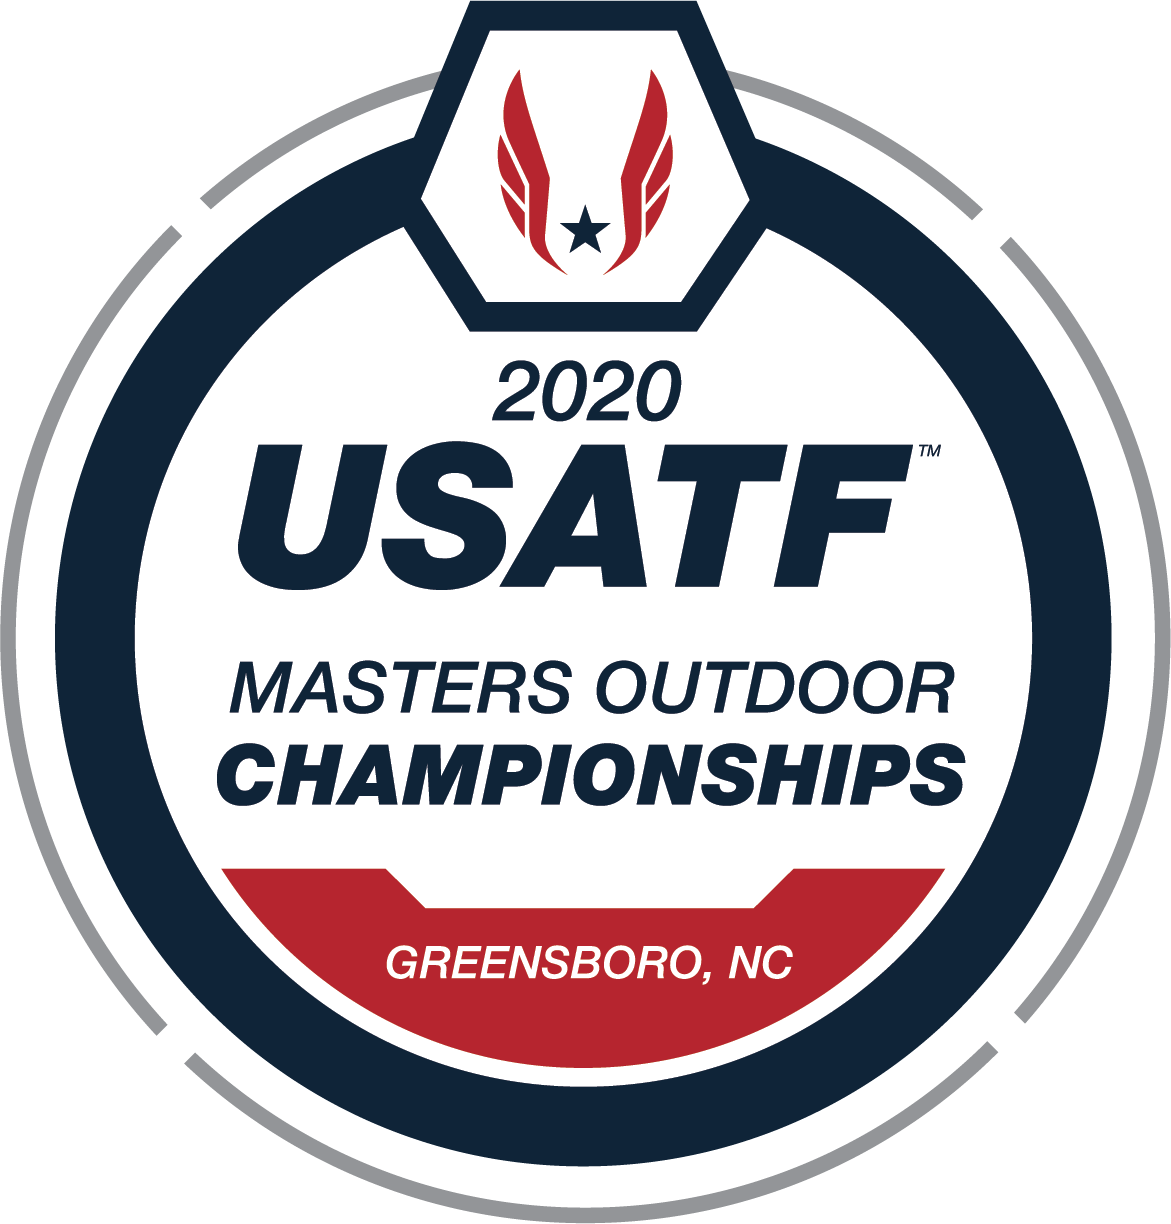 USATF Masters Outdoor Championships in Greensboro, NC